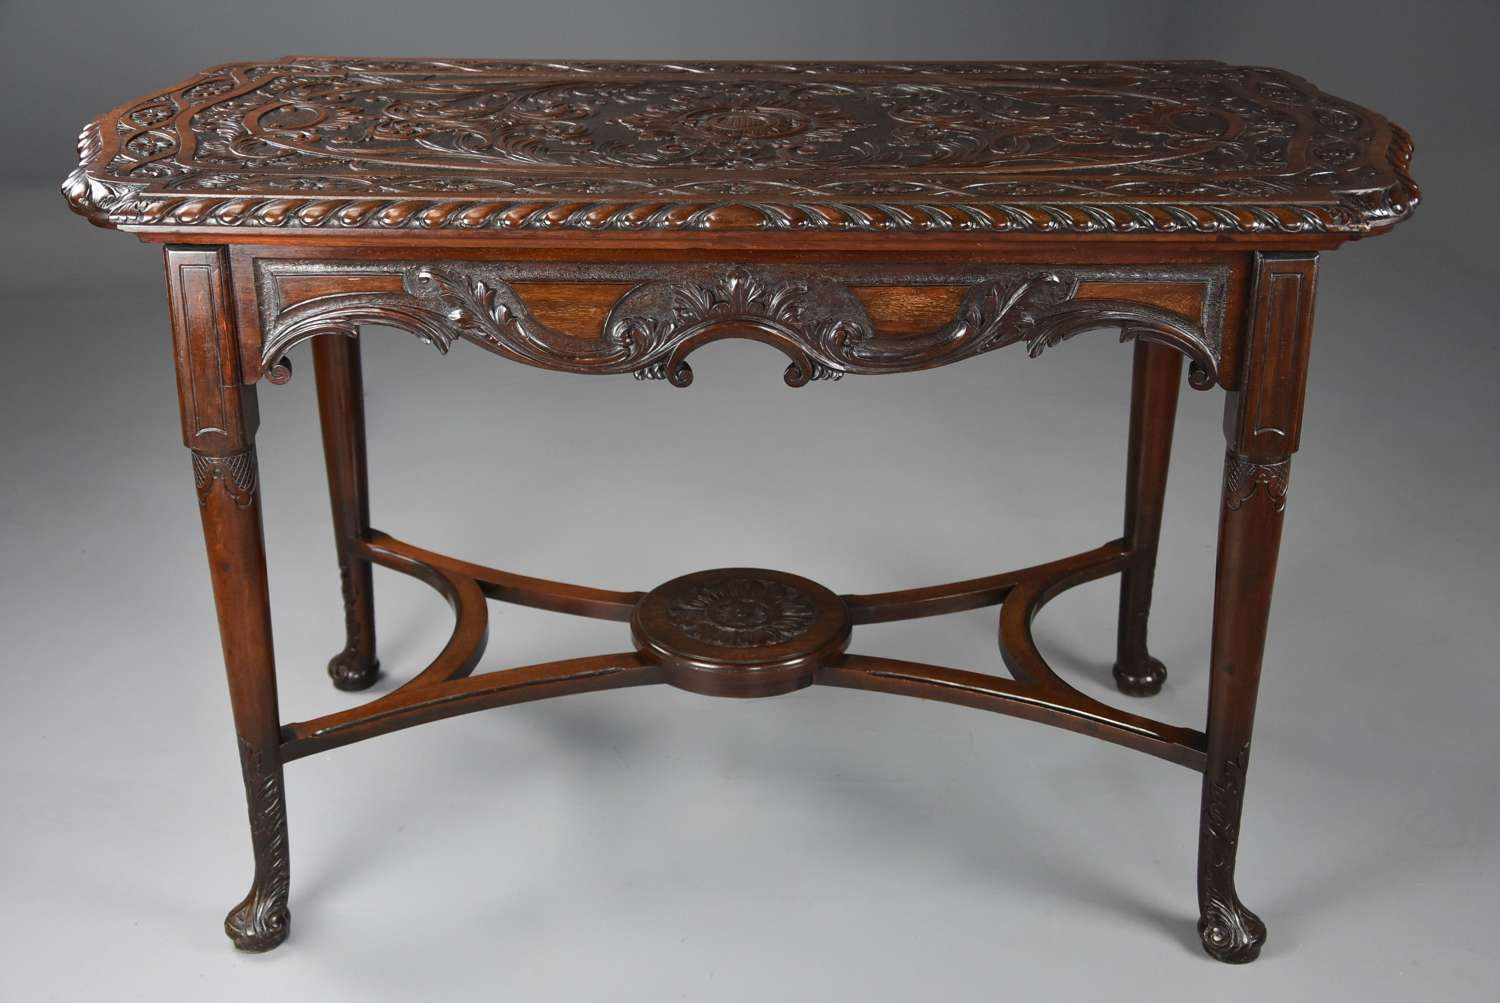 18th/19thc finely carved mahogany centre table